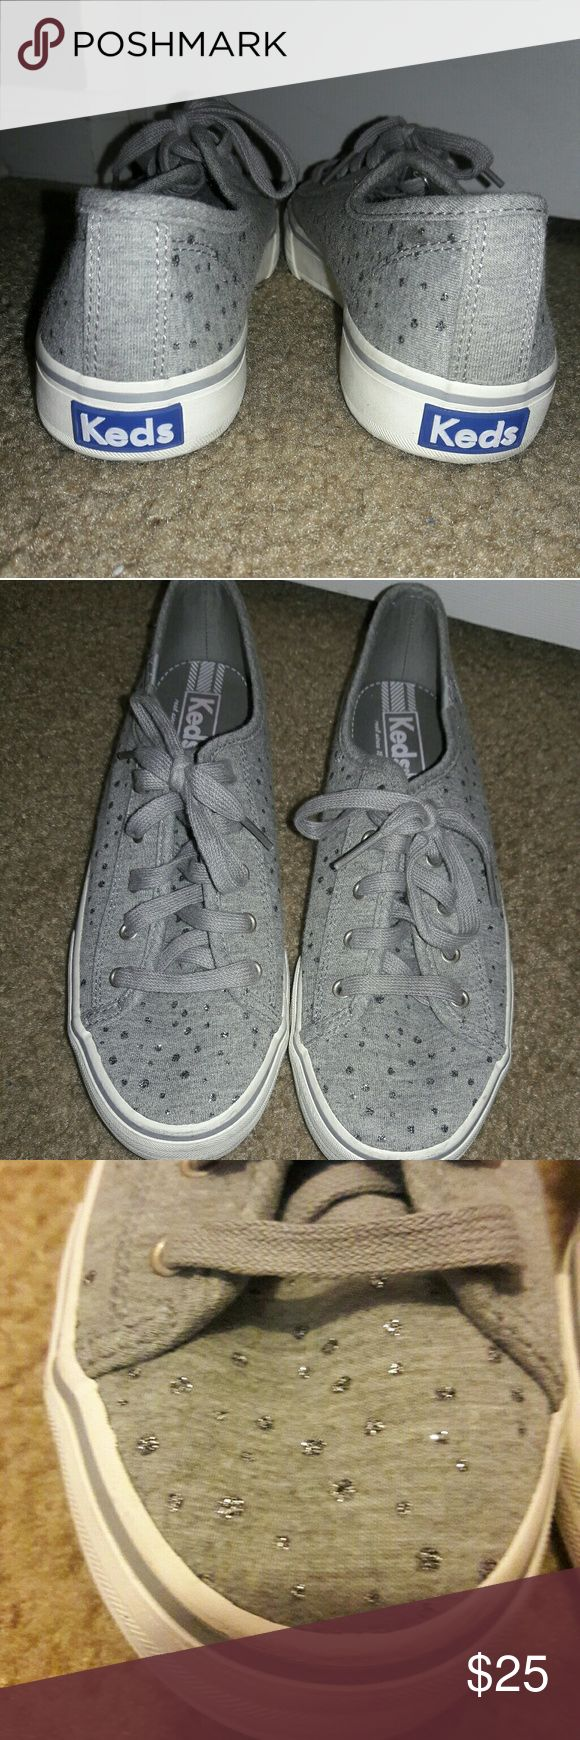 Keds tennis shoes grey with glitter dots size 8 Super cute old school Keds! Grey with glitter dots. So chic. Used once if any. Like new! Size 8 Keds Shoes Sneakers